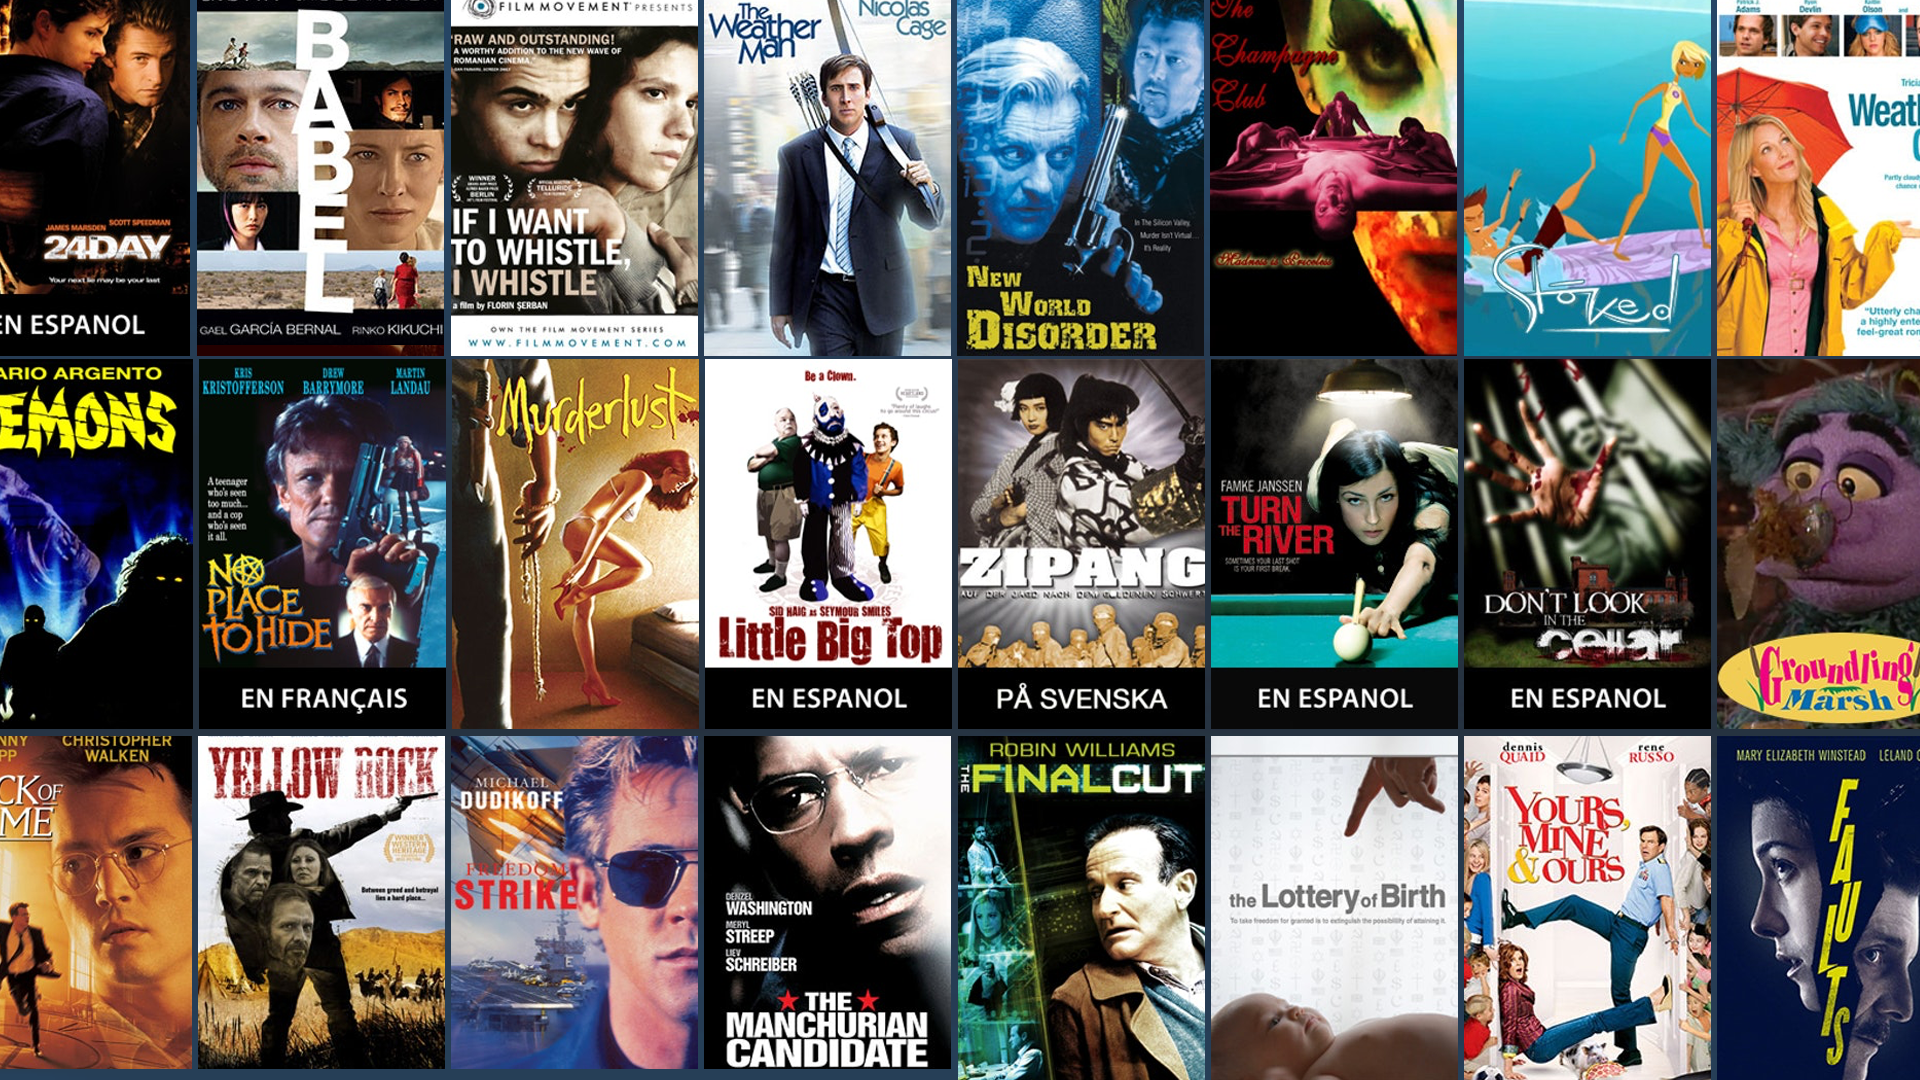 Home | Watch Free Movies & TV Shows Online | Popcornflix